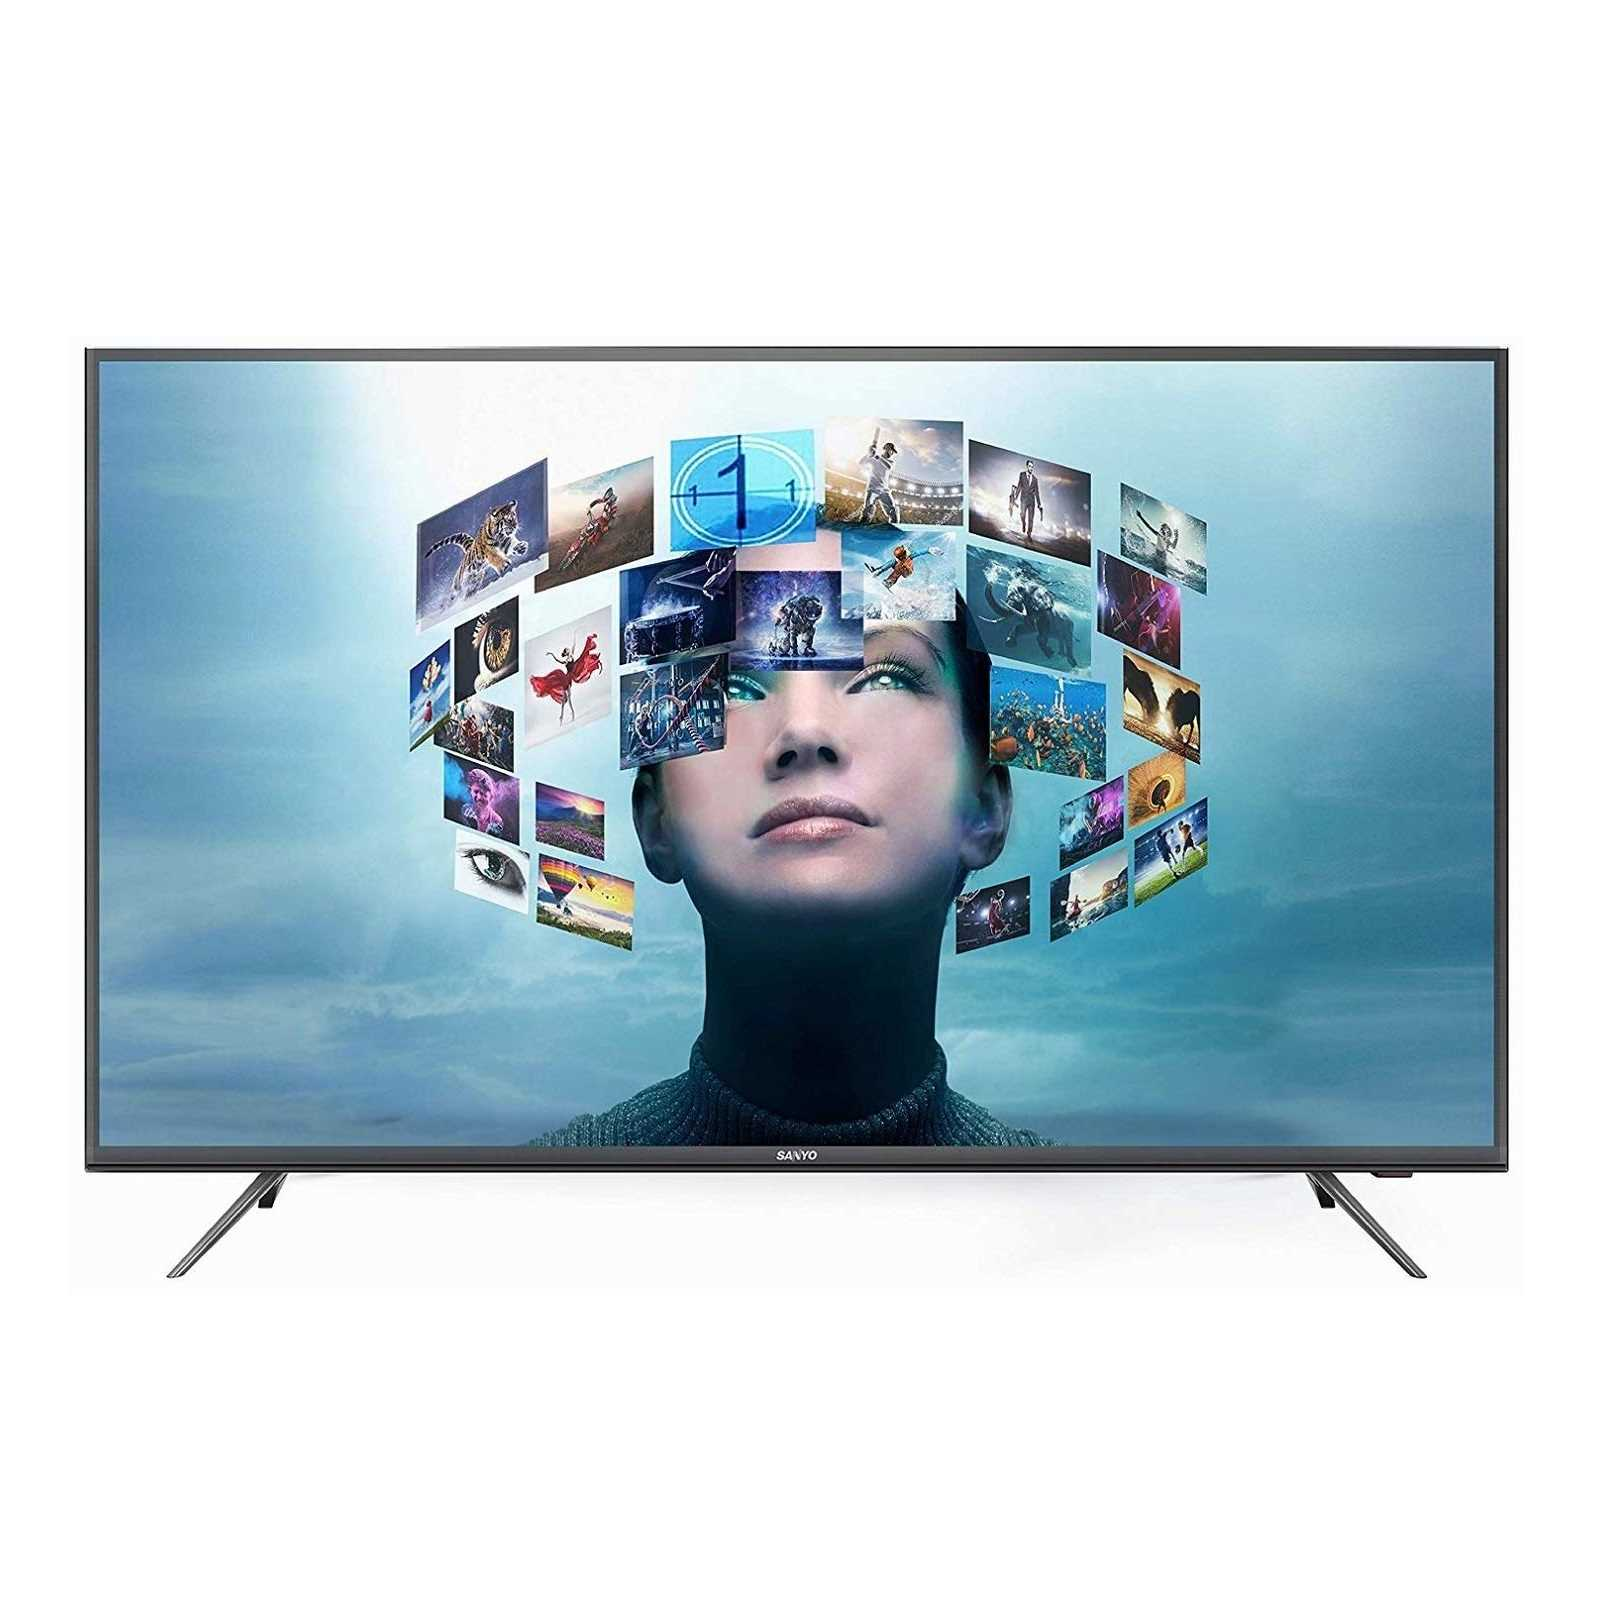 Sanyo Certified Android XT-43A081U 43 Inch 4K Ultra HD Smart LED Television